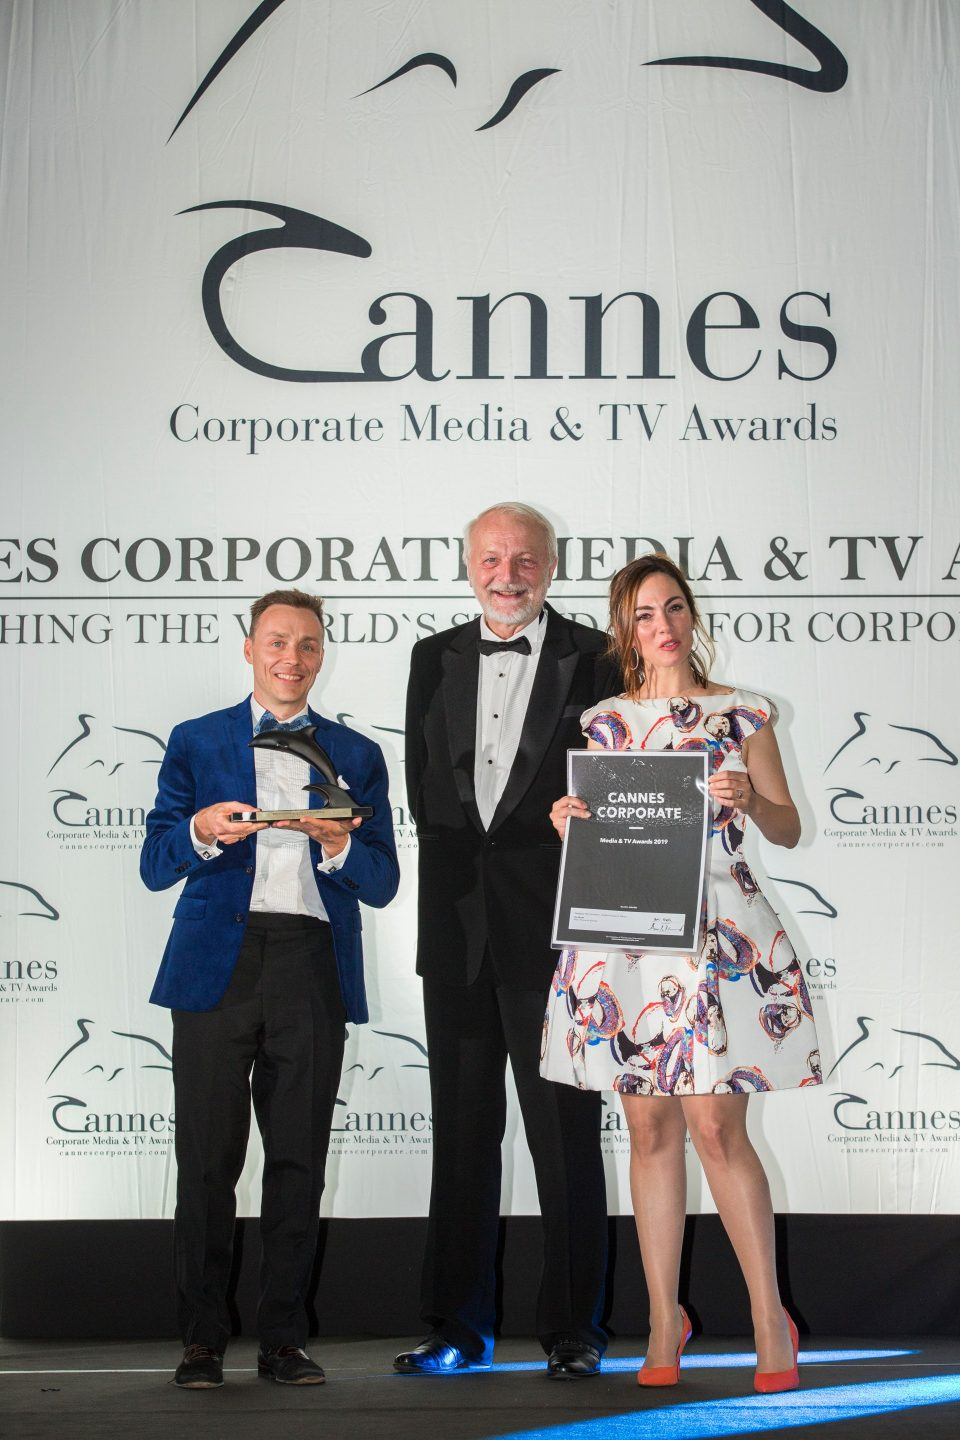 Cannes Corporate Media & TV Awards_Ceremony2